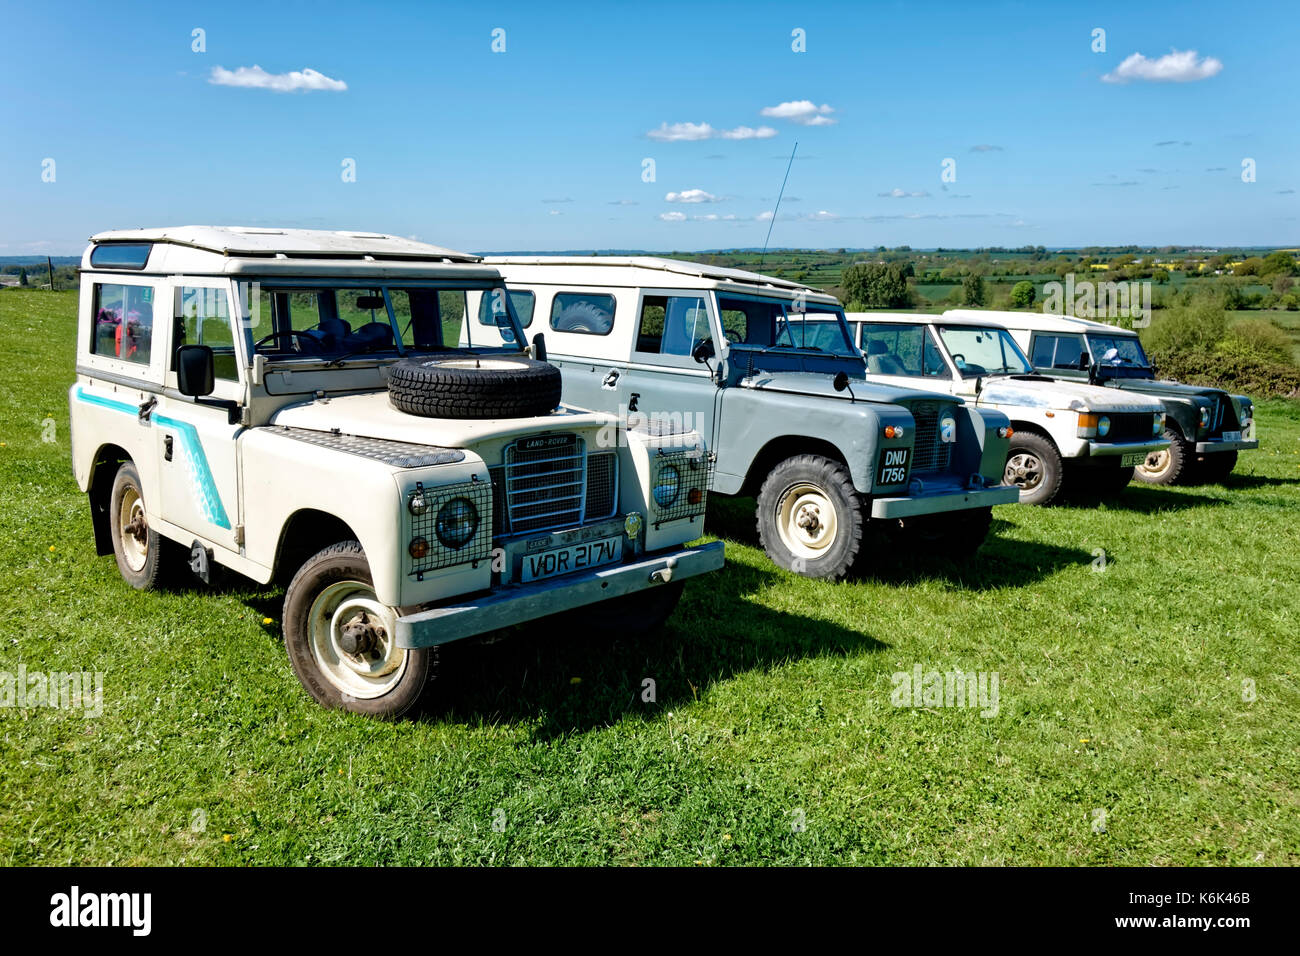 A Line-up of Vintage & Classic Land Rovers at the 2017 Westbury Transport & Vintage Gathering, Bratton, Wiltshire, United Kingdom. - Stock Image